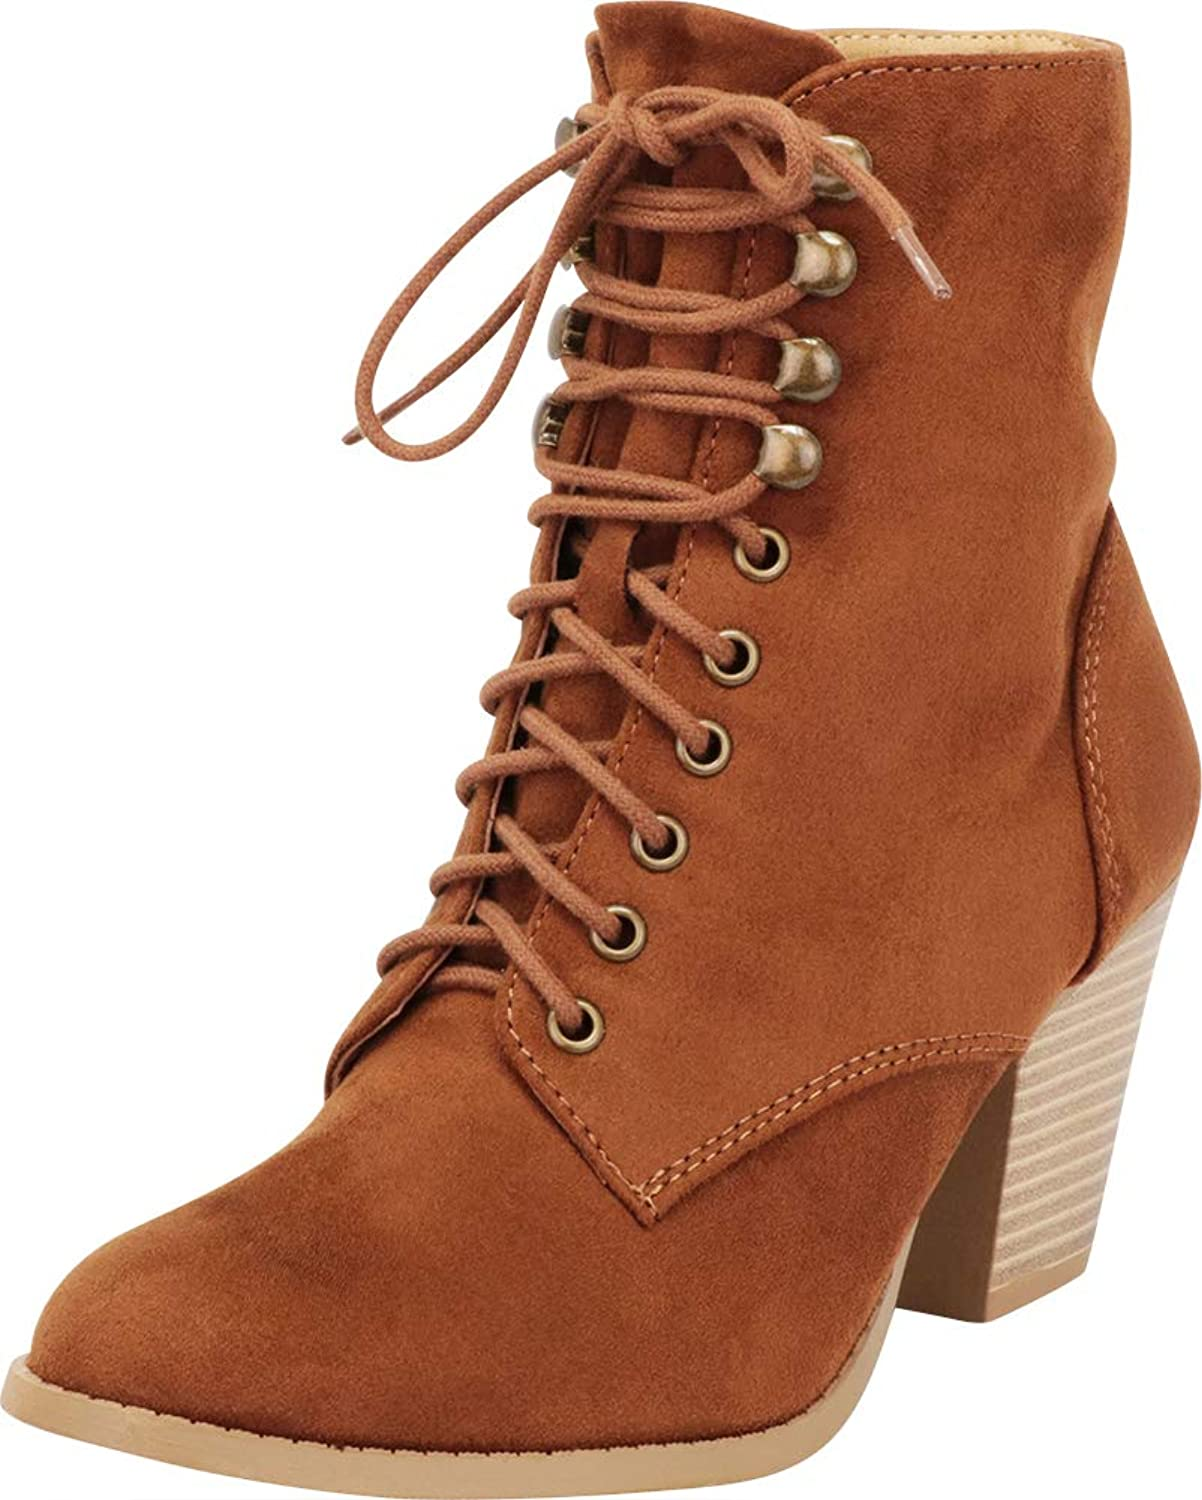 Cambridge Select Women's Closed Toe Victorian Steampunk Lace-Up Chunky Stacked Heel Ankle Bootie